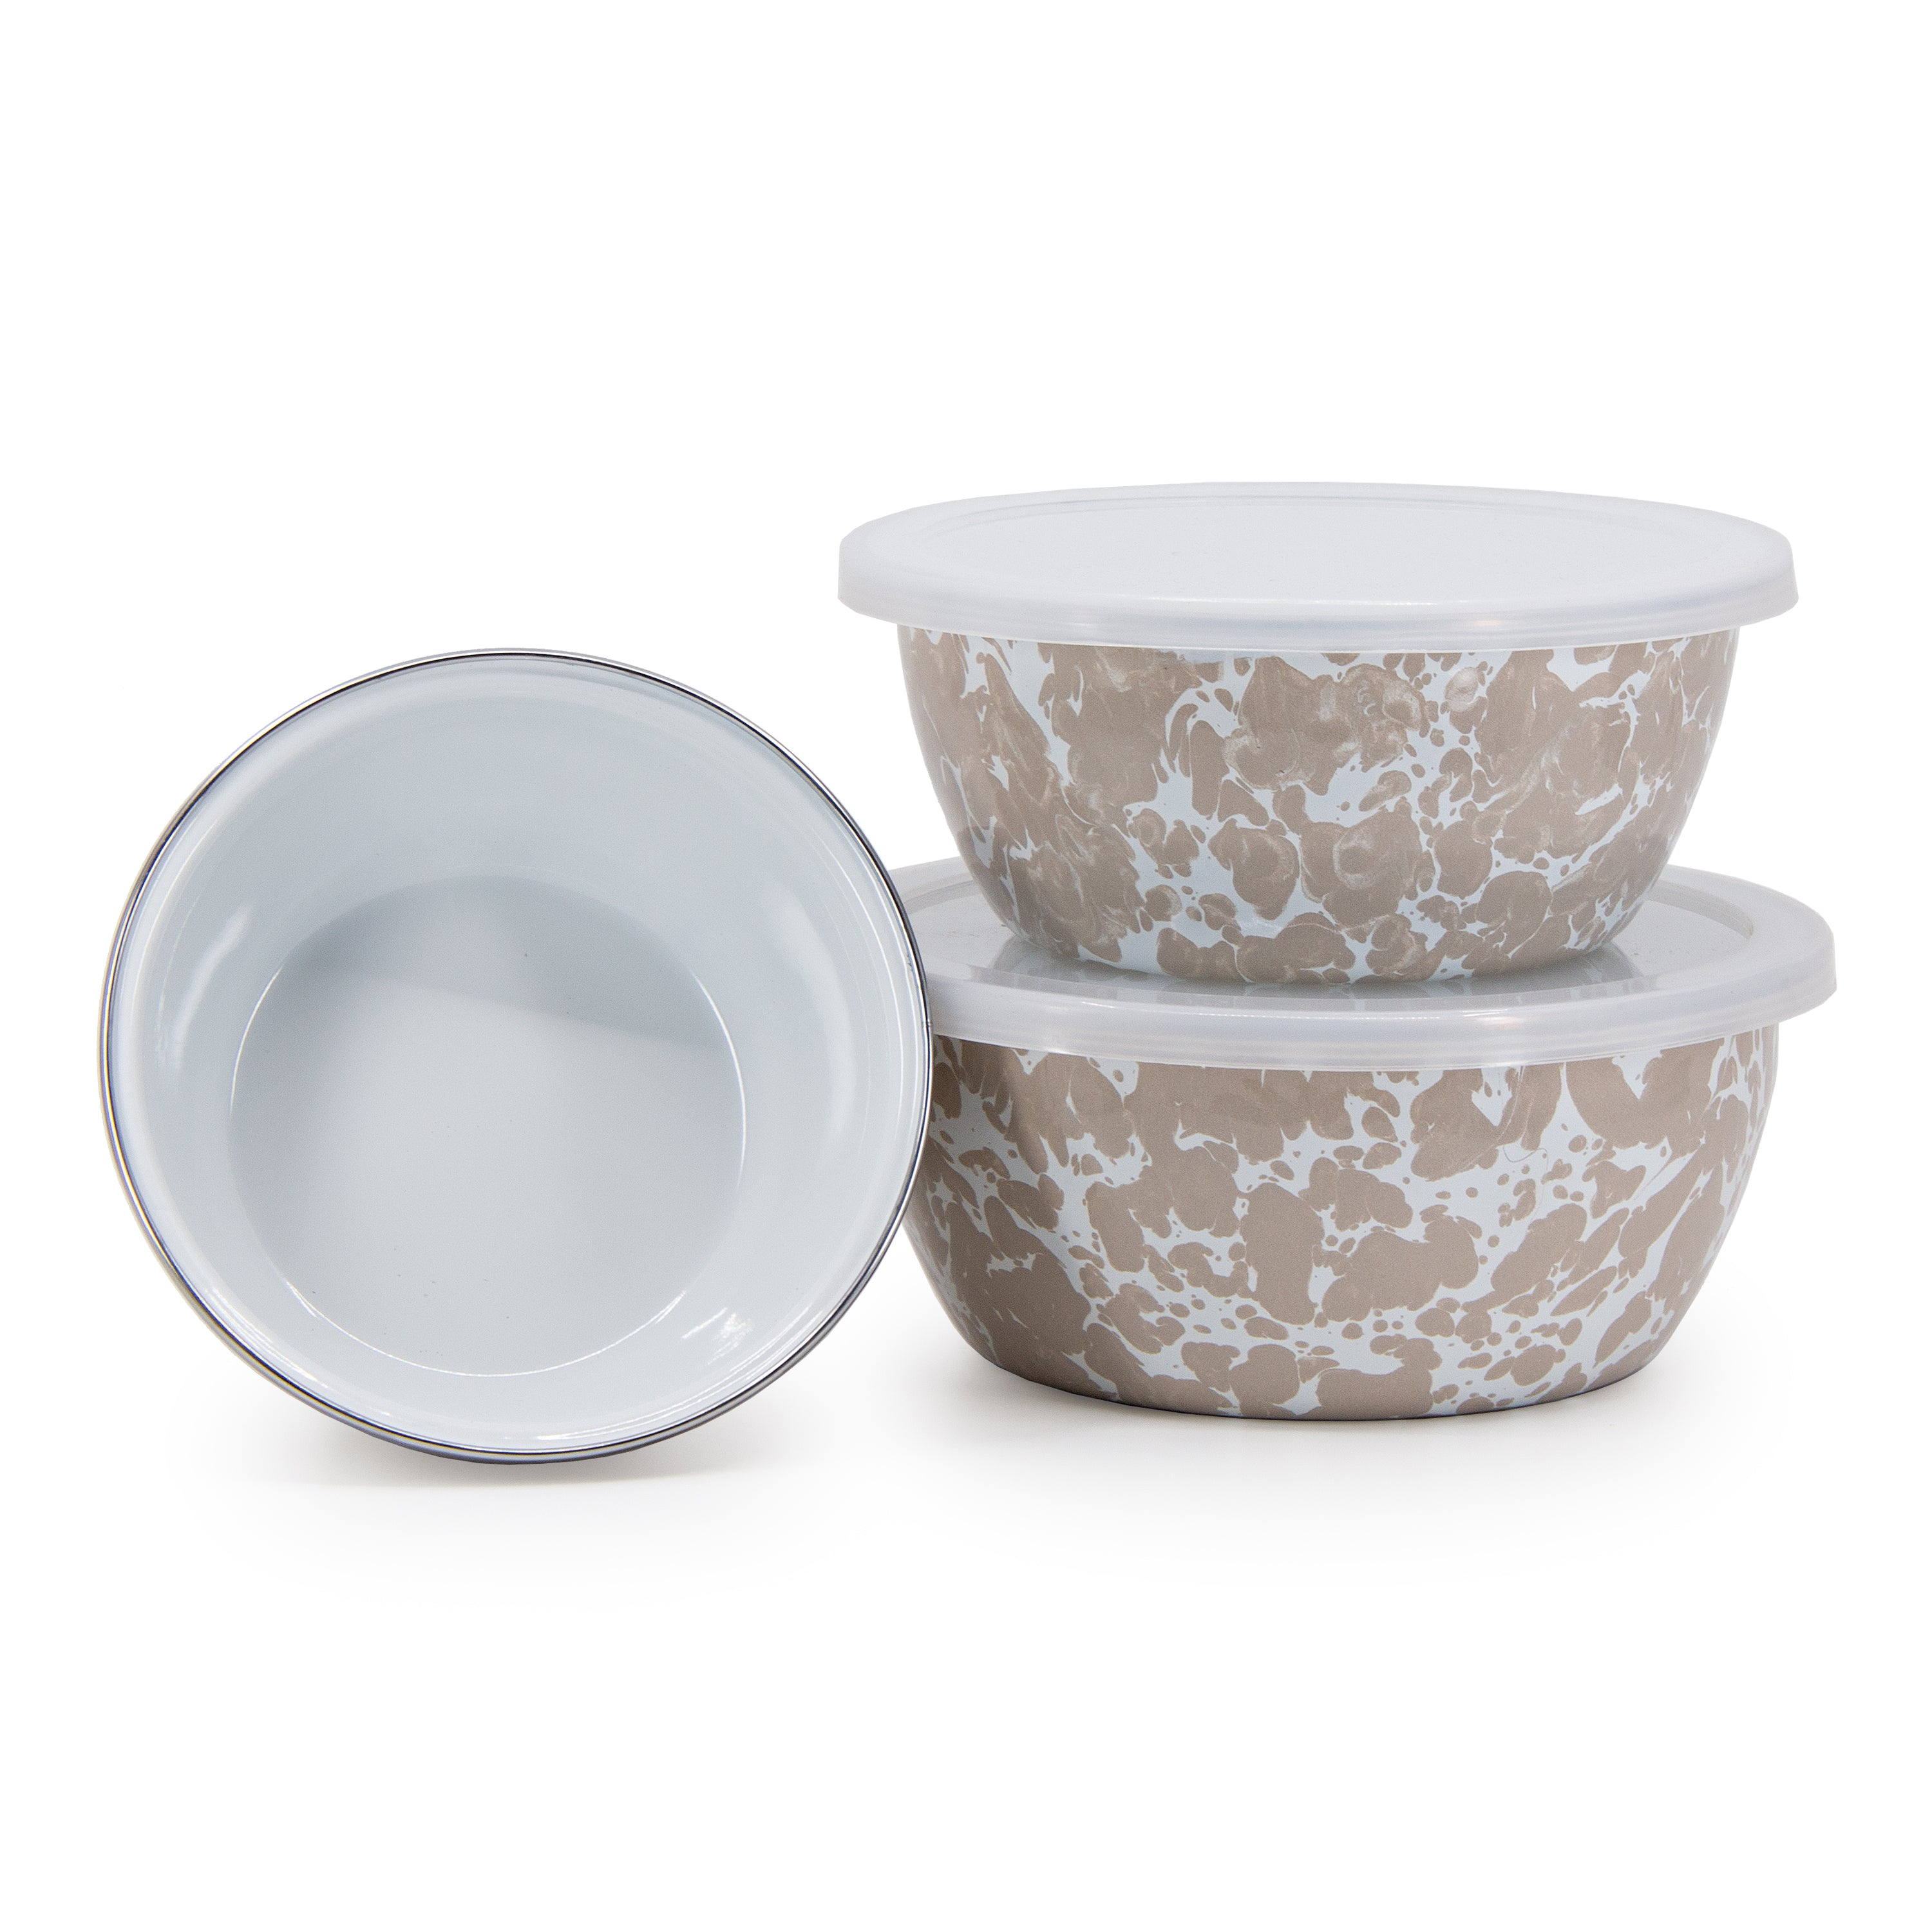 TP30 - Taupe Swirl Nesting Bowls Image 1